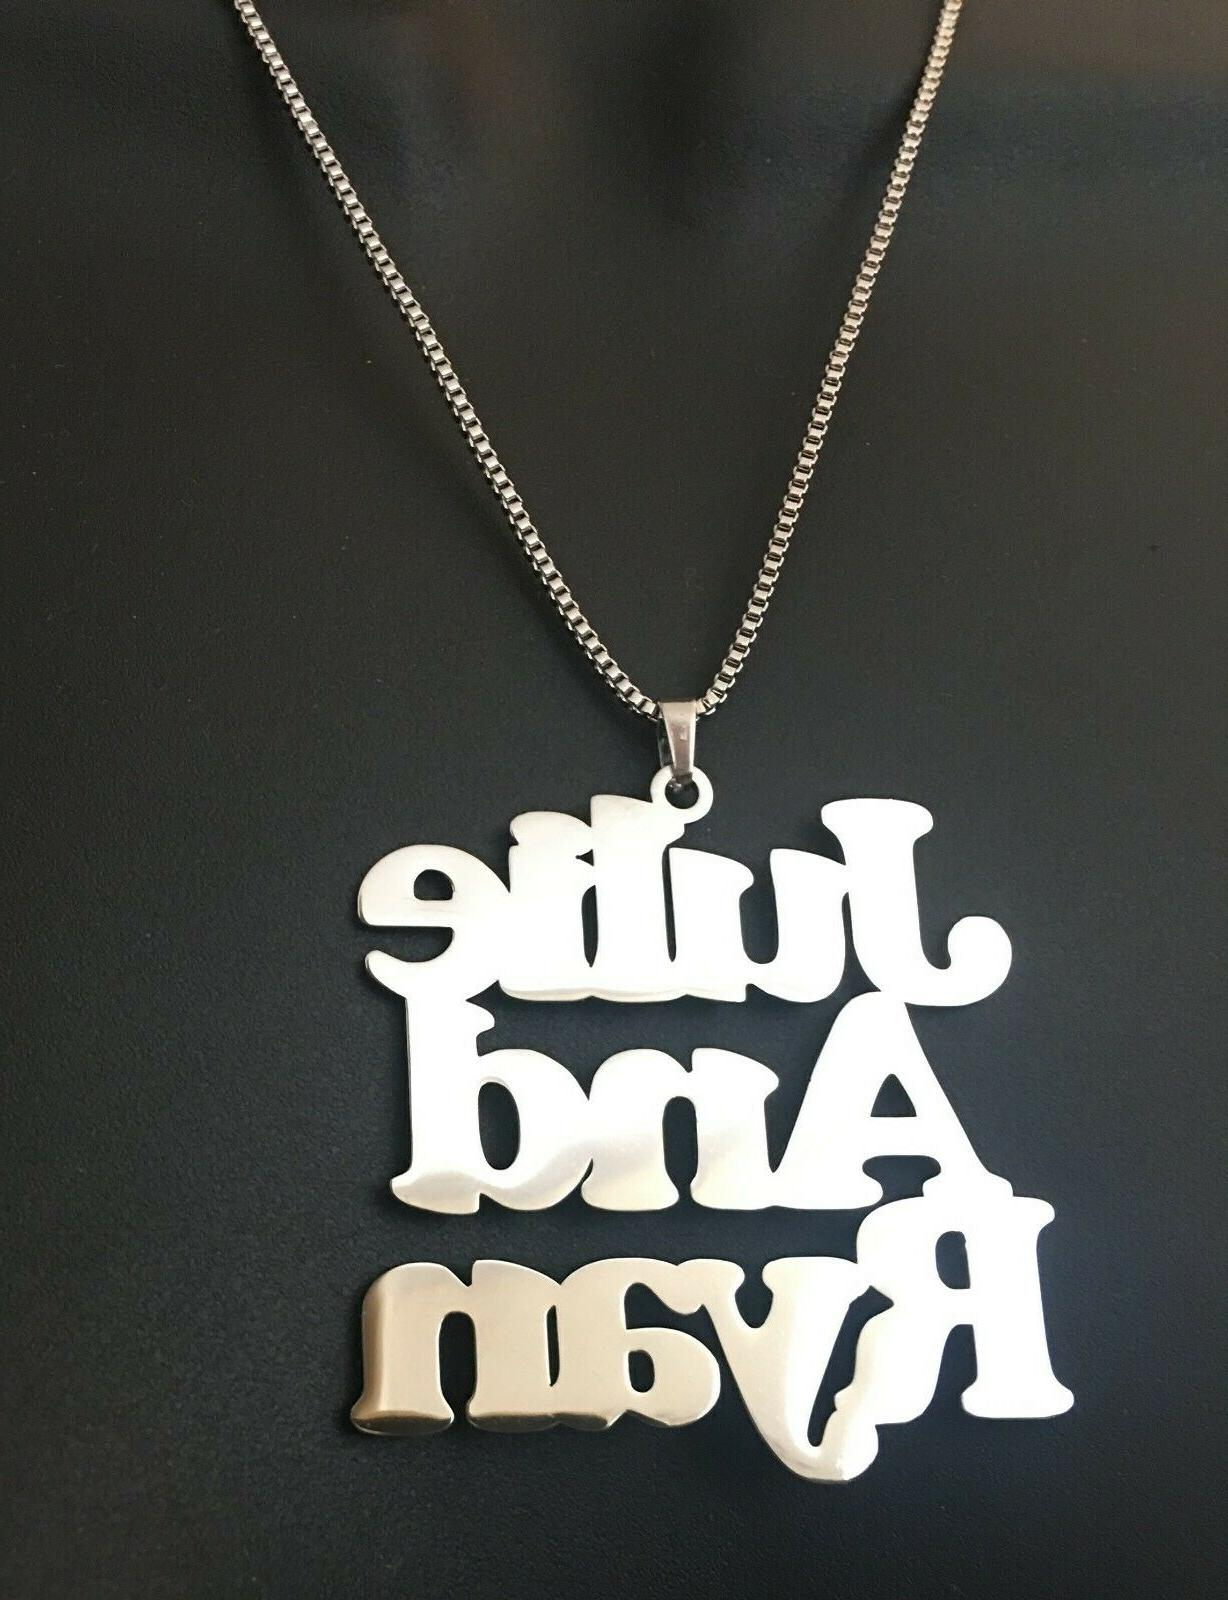 Personalized, one or more name necklace